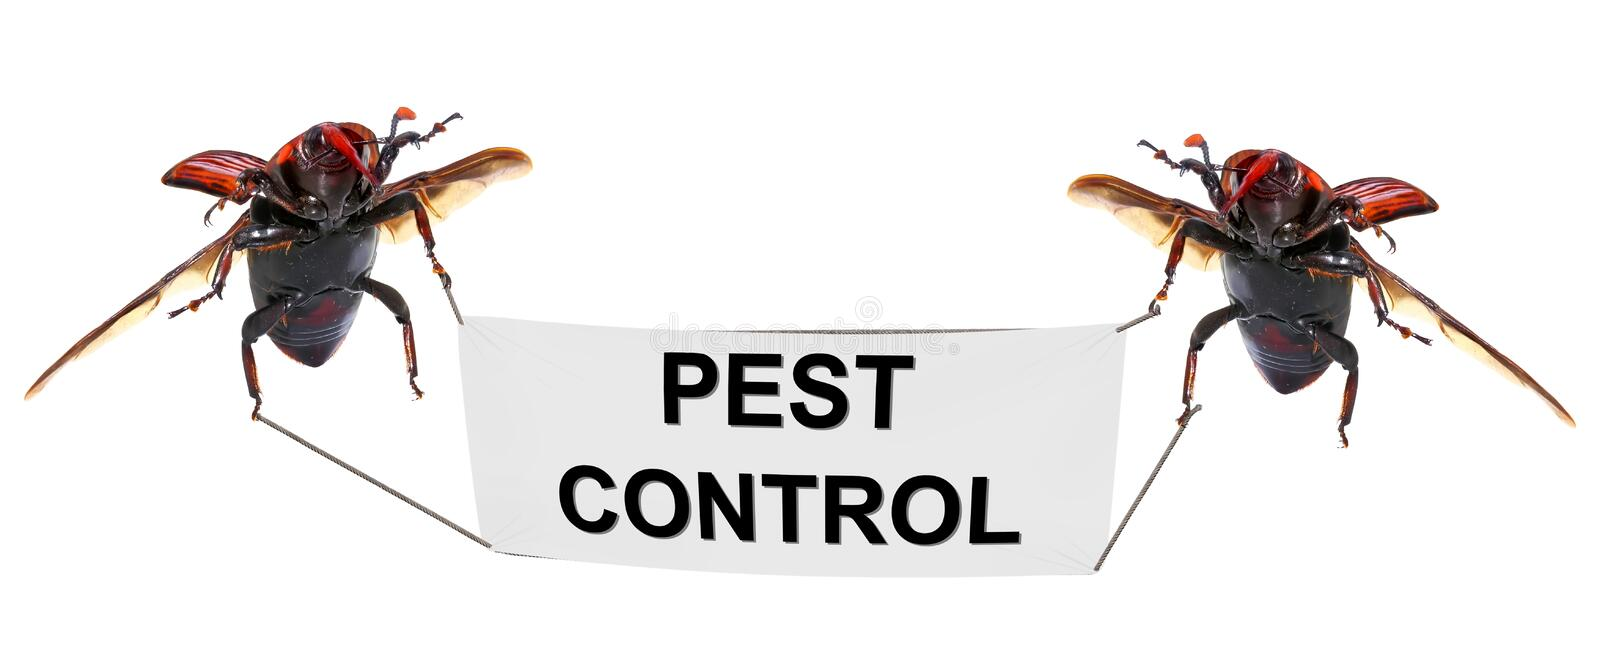 Pest control stock photo